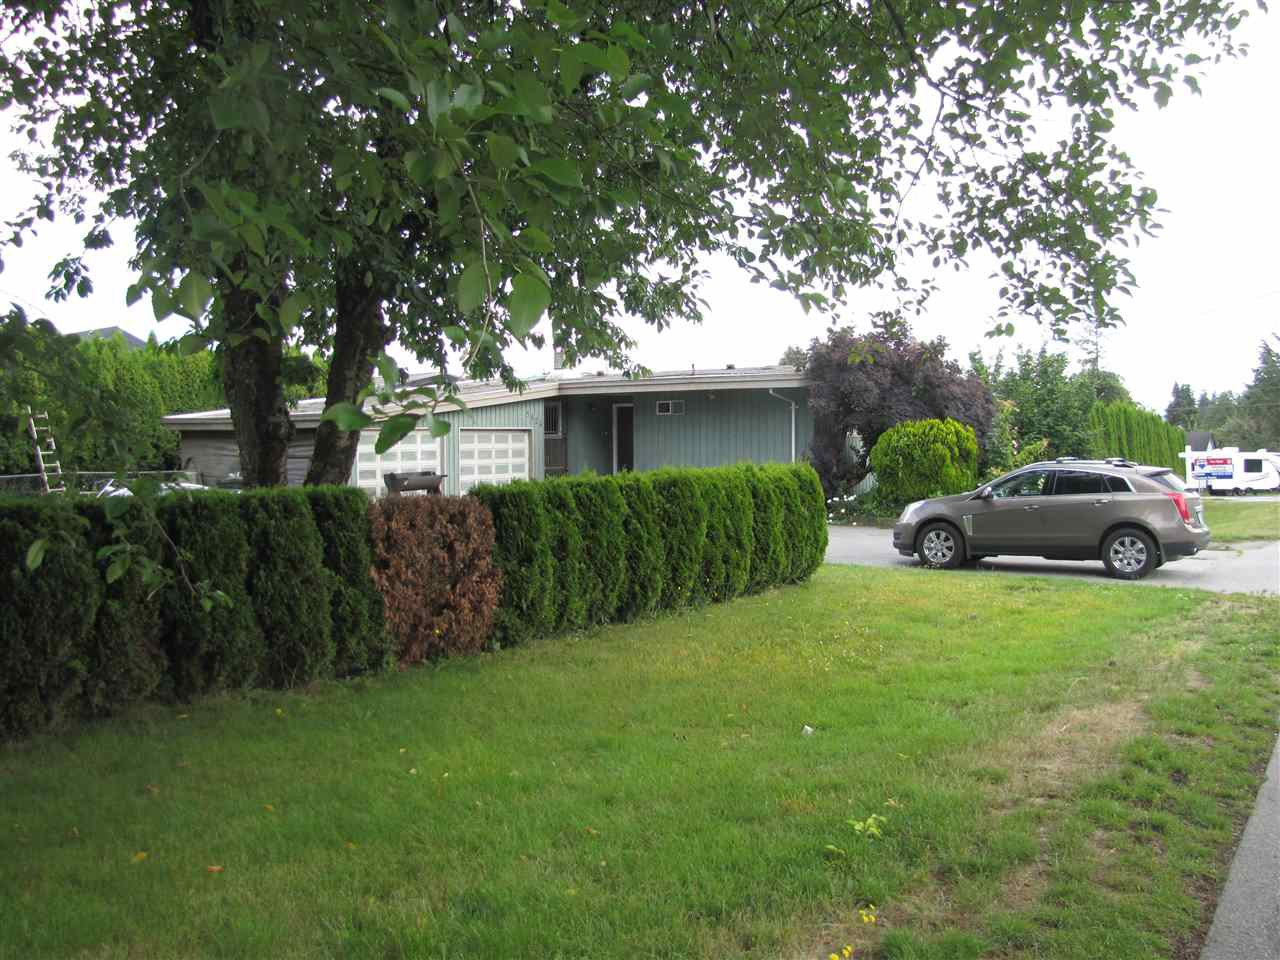 Main Photo: 5824 172 Street in Surrey: Cloverdale BC House for sale (Cloverdale)  : MLS®# R2088081